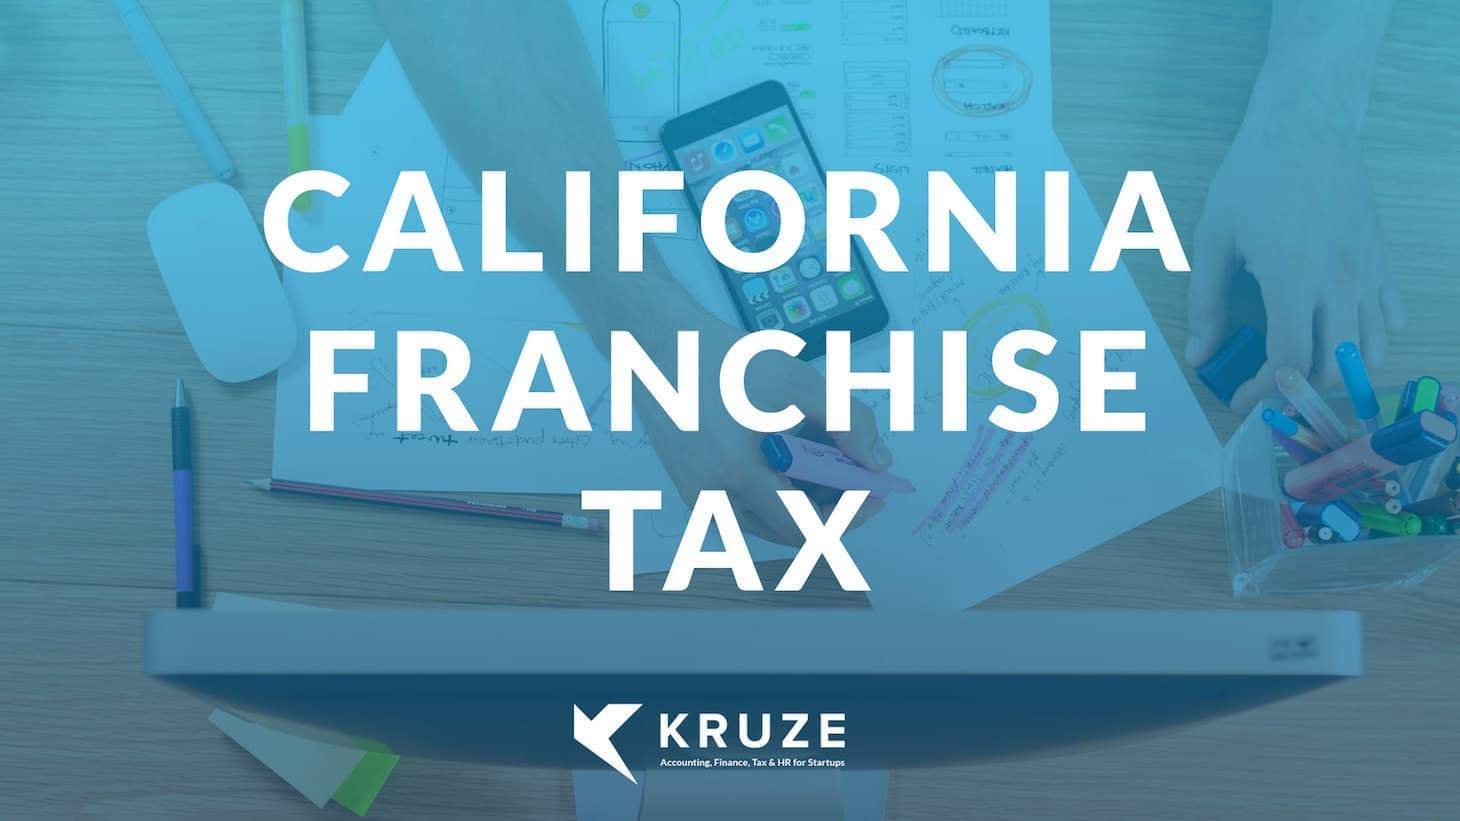 California Franchise Tax